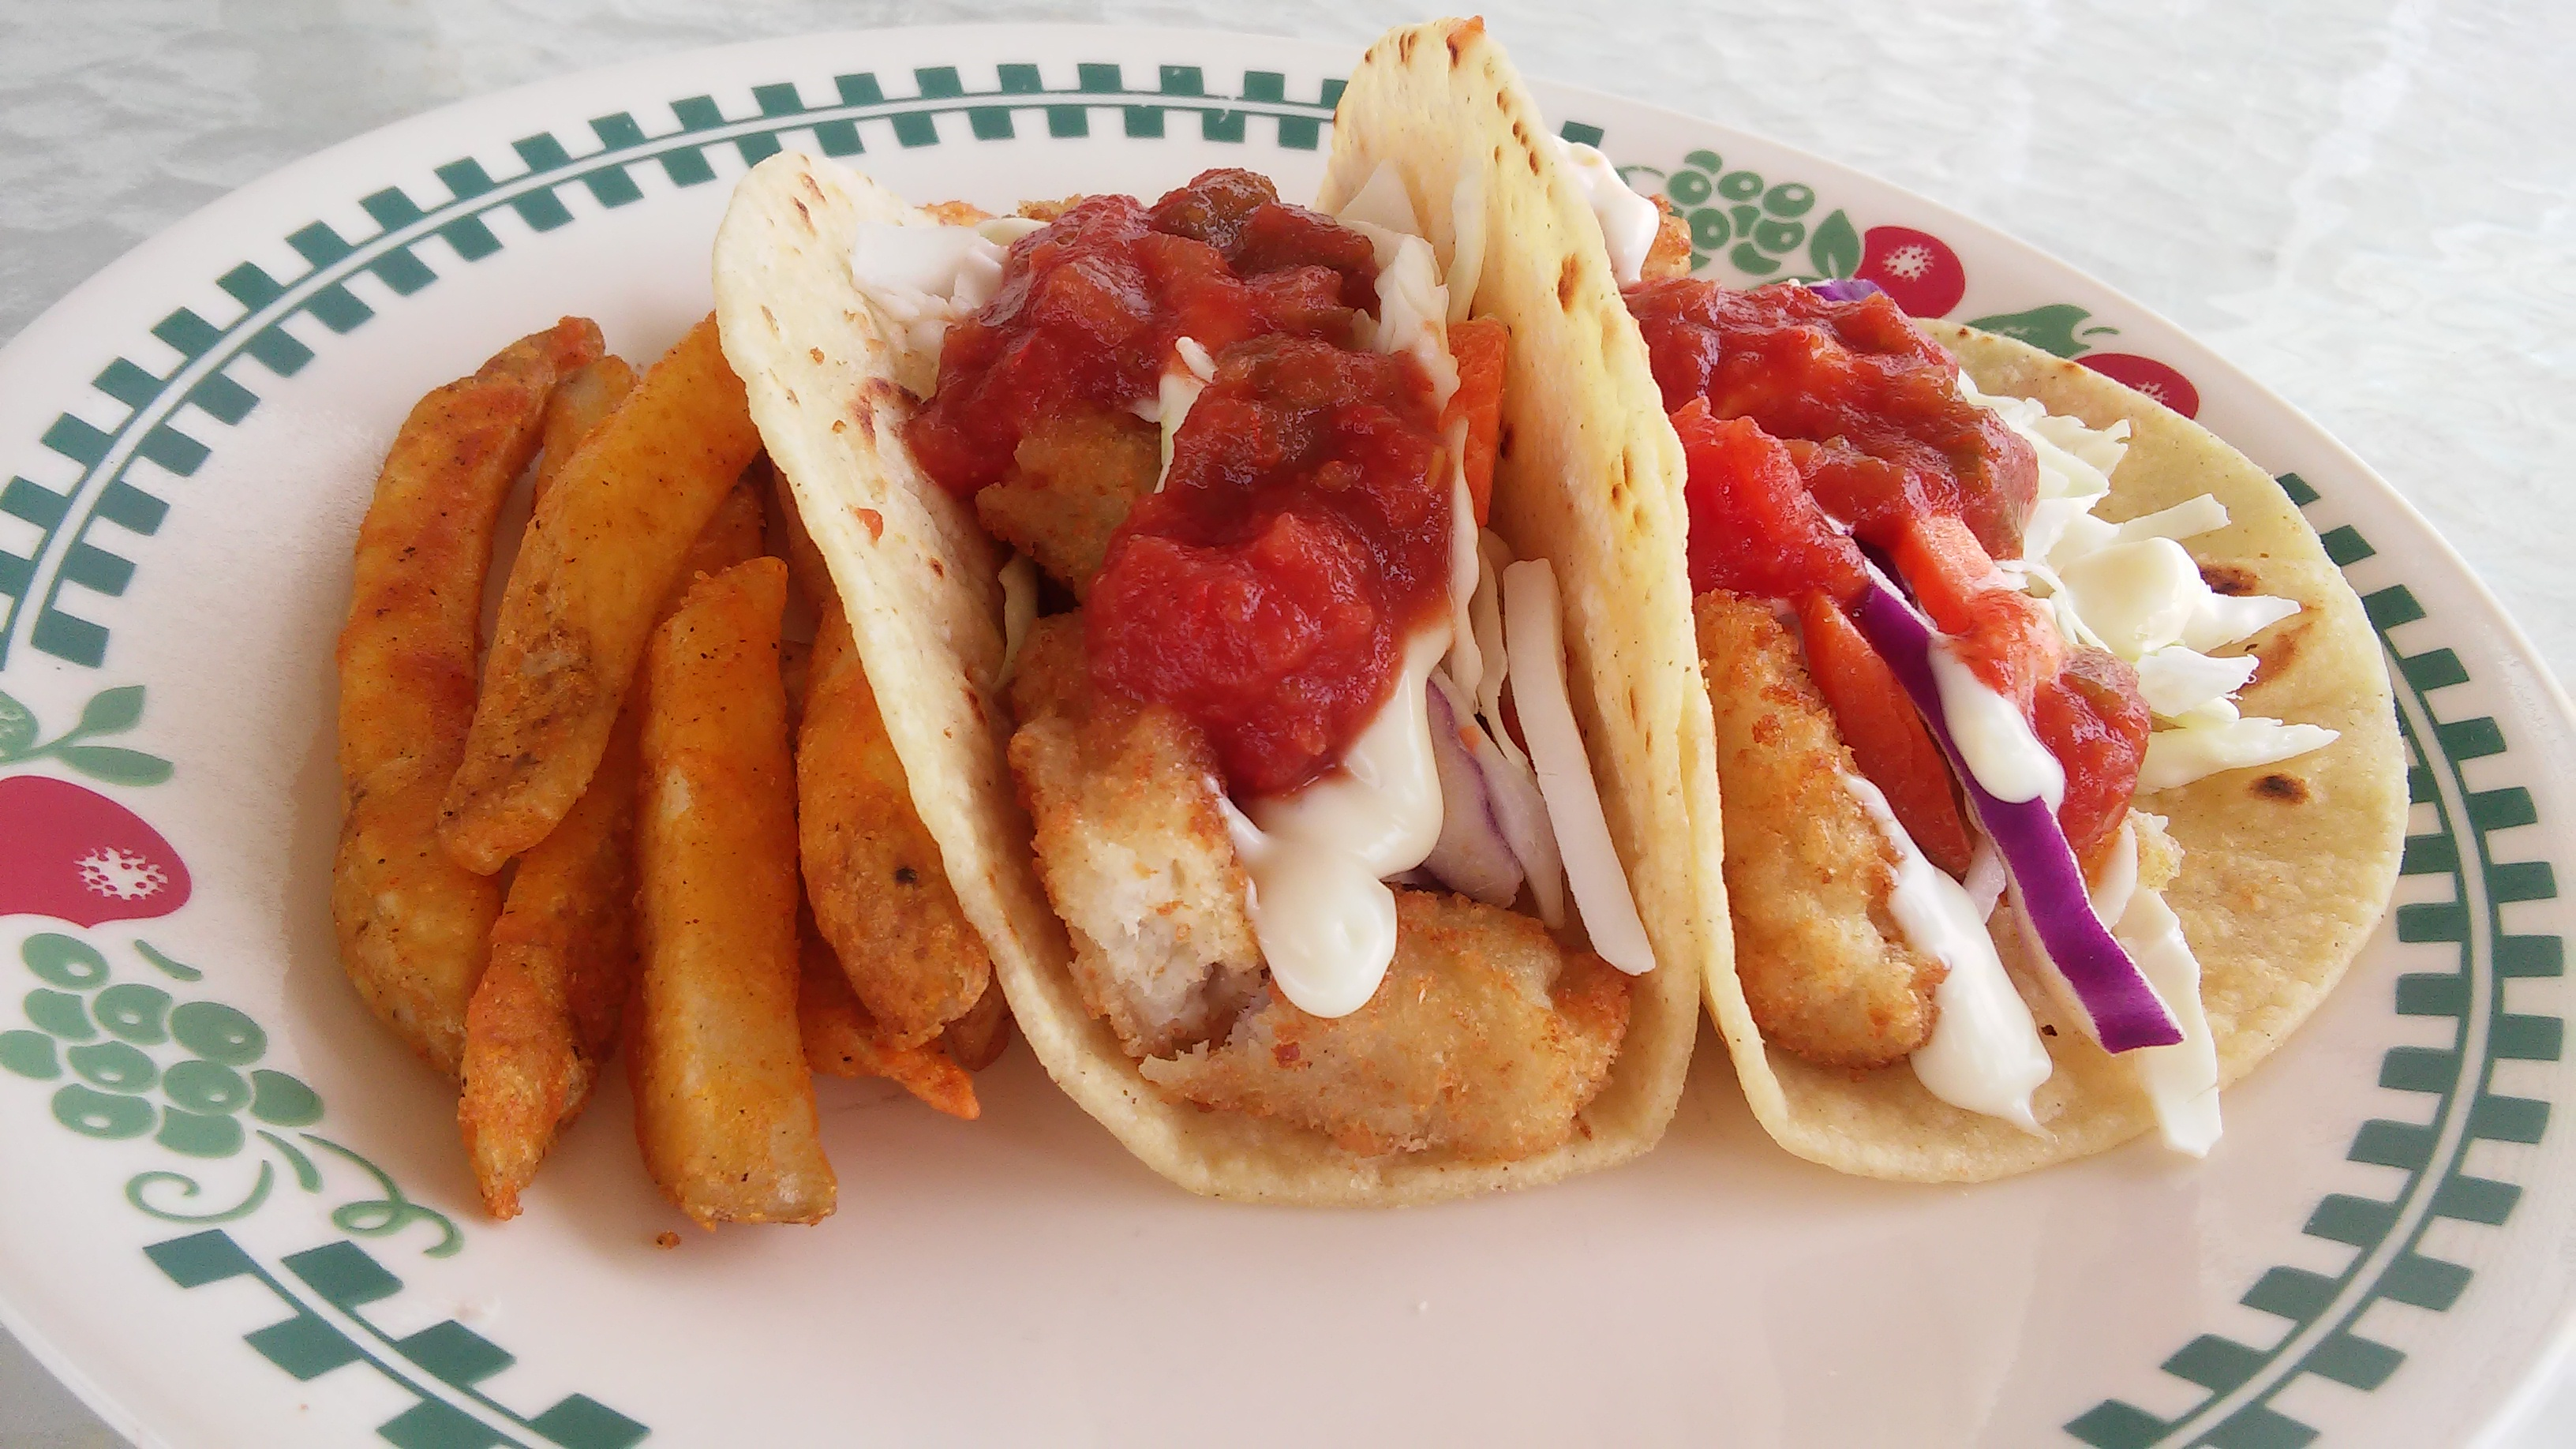 These simple, no-mess fish tacos are perfect for anyone (not just beginner cooks) who hates the mess of battering and frying fish. The secret is crispy fish sticks! You'll fill warmed corn tortillas with crispy fish sticks and cabbage, and top with tartar sauce and salsa.